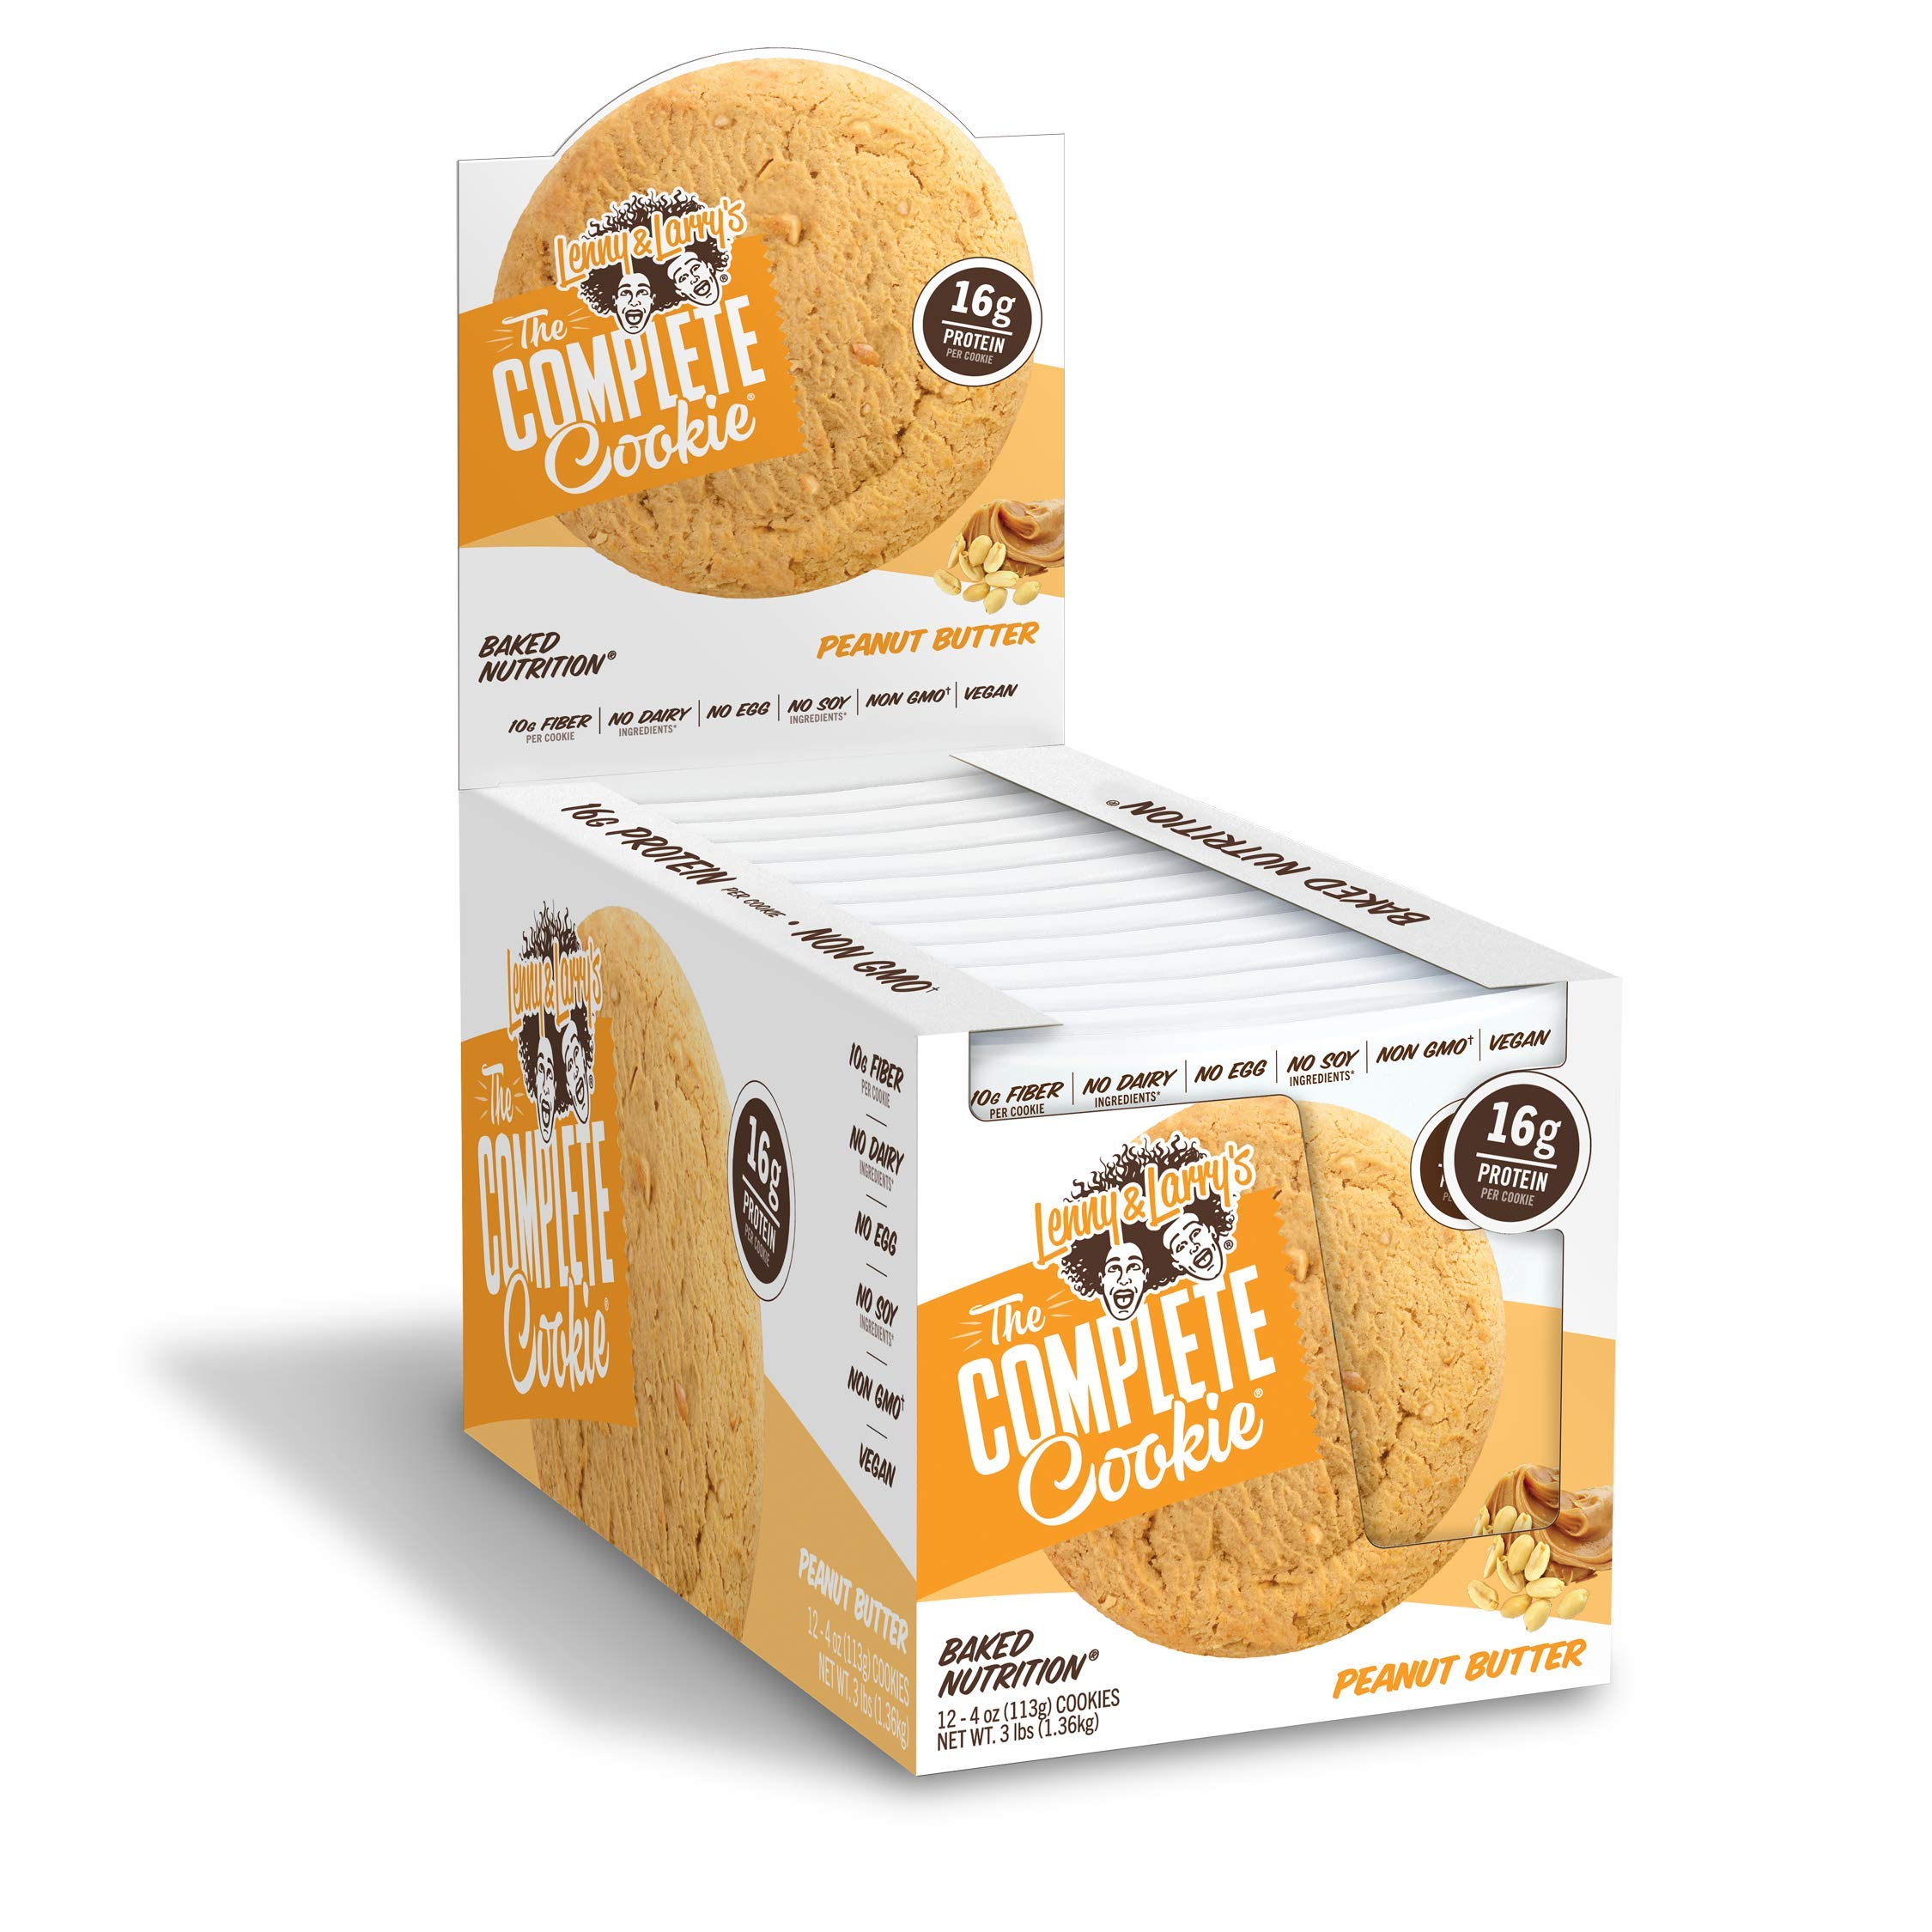 Lenny & Larry's Complete Cookie 4 oz Pack of 12 Case of 6 (Peanut Butter) by Lenny & Larry's Complete Cookie (Image #2)